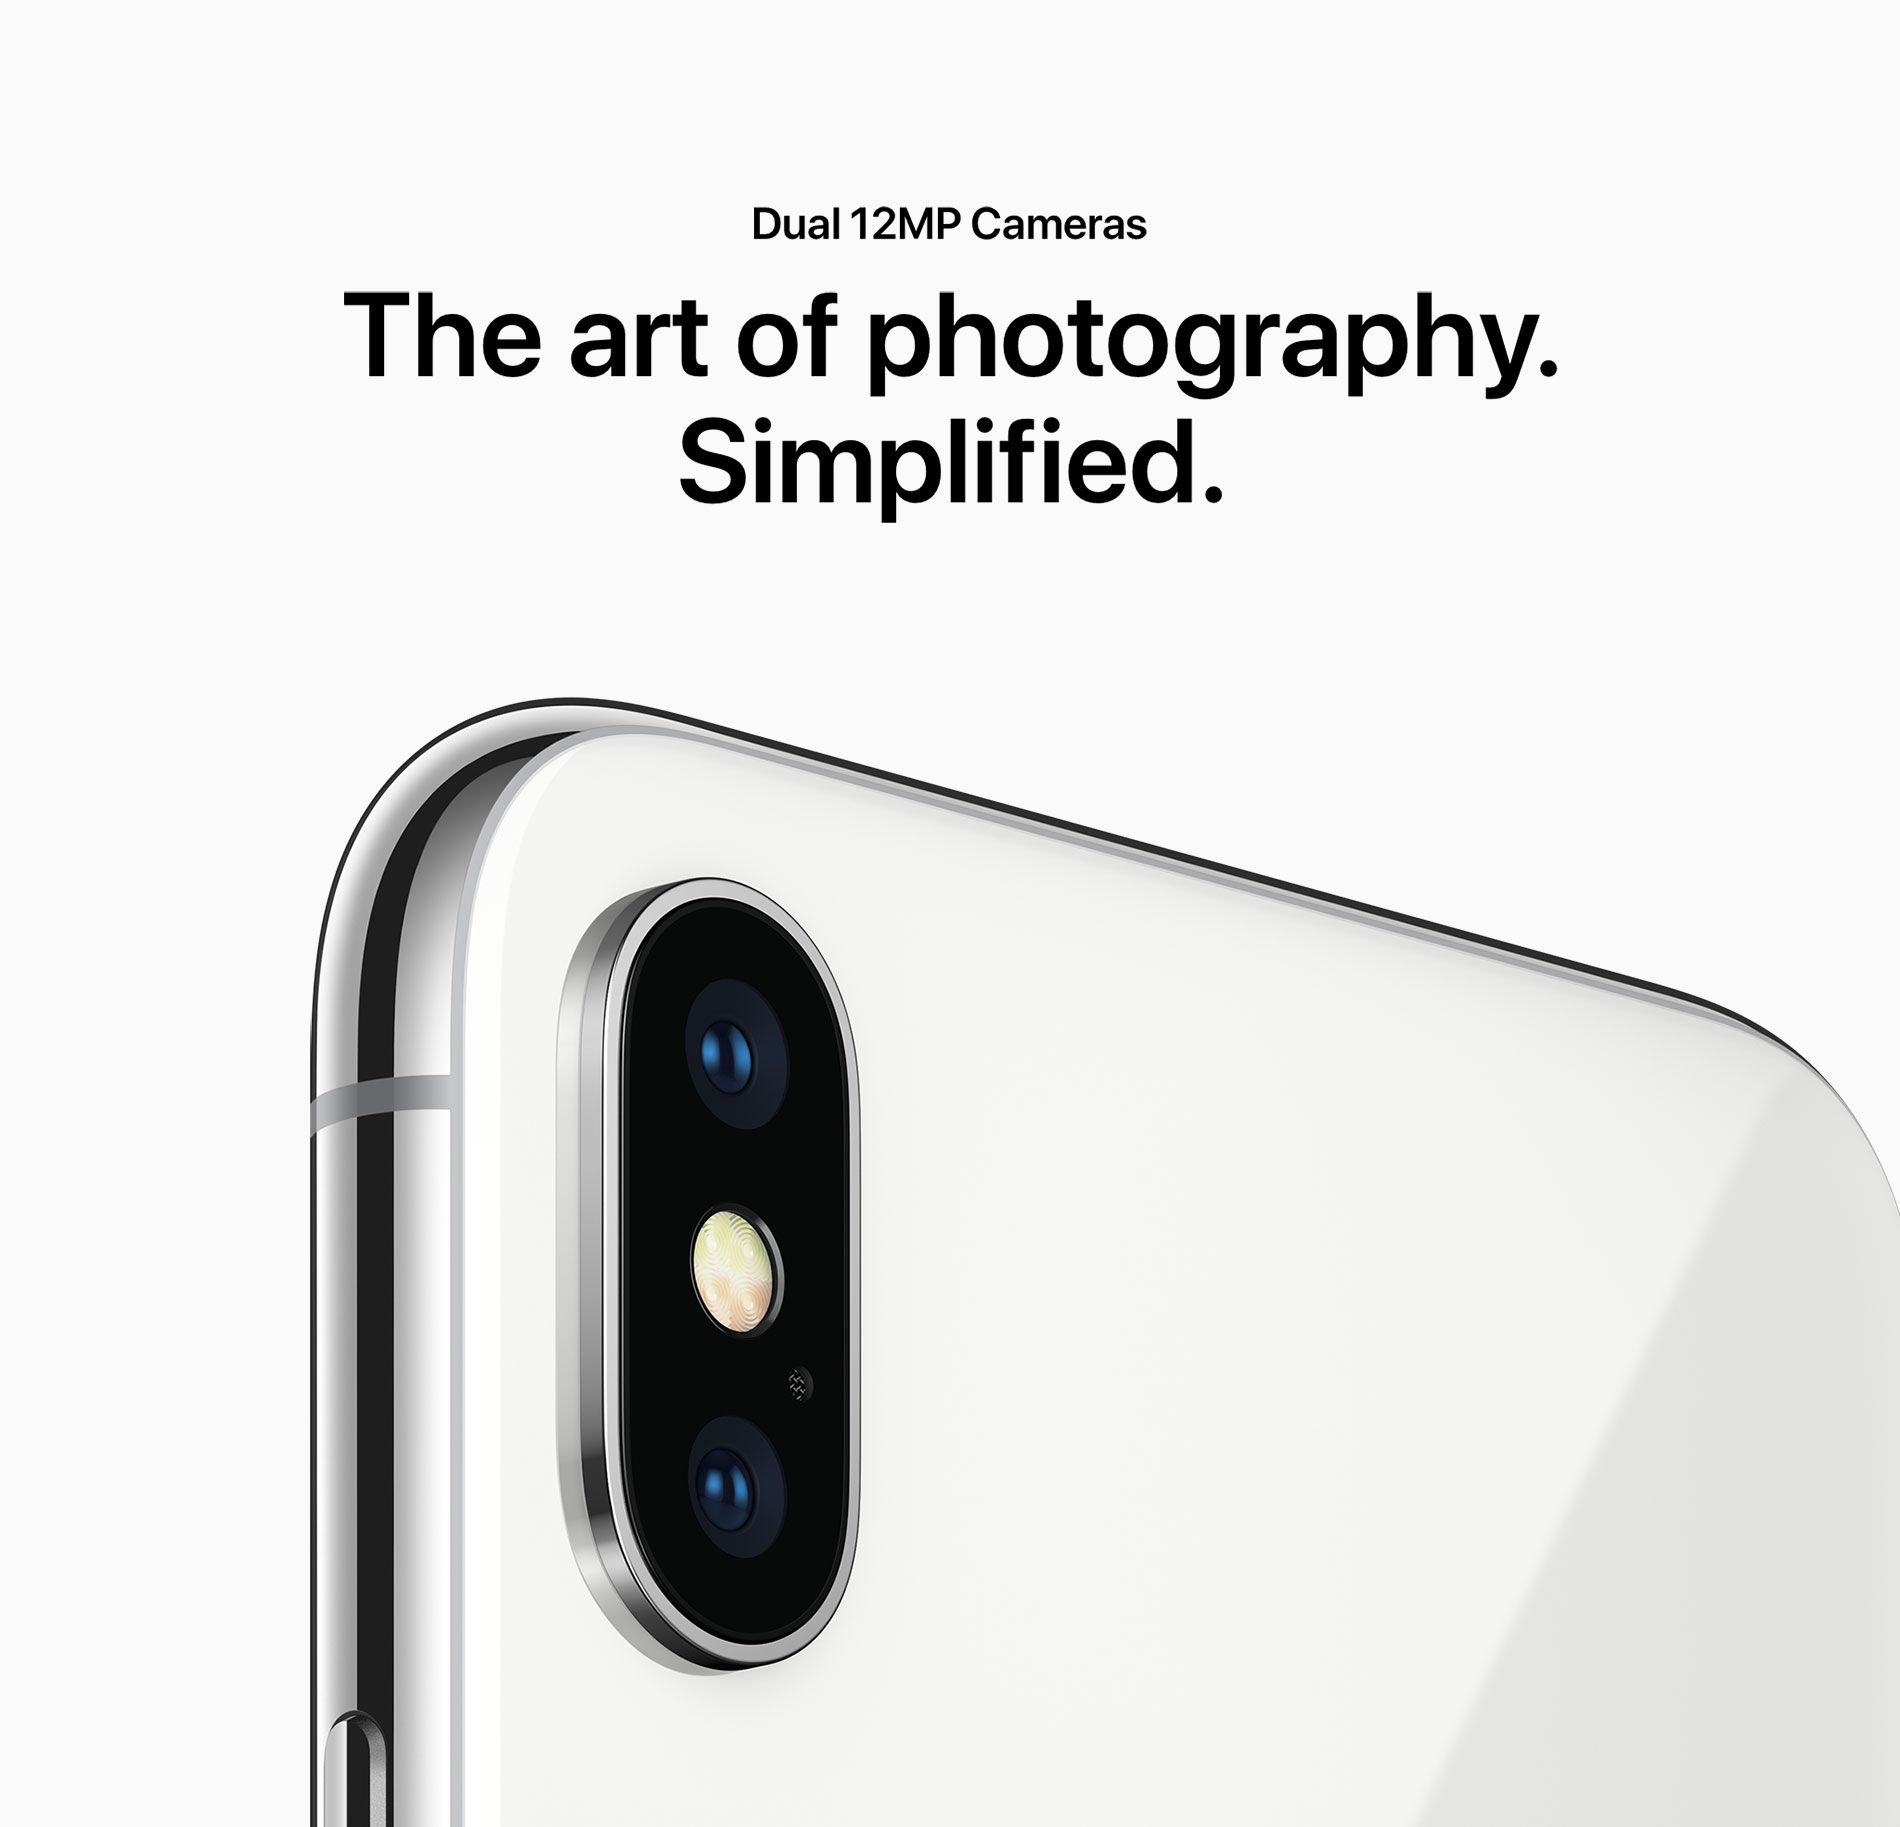 Dual 12MP Cameras - The art of photography. Simplified.